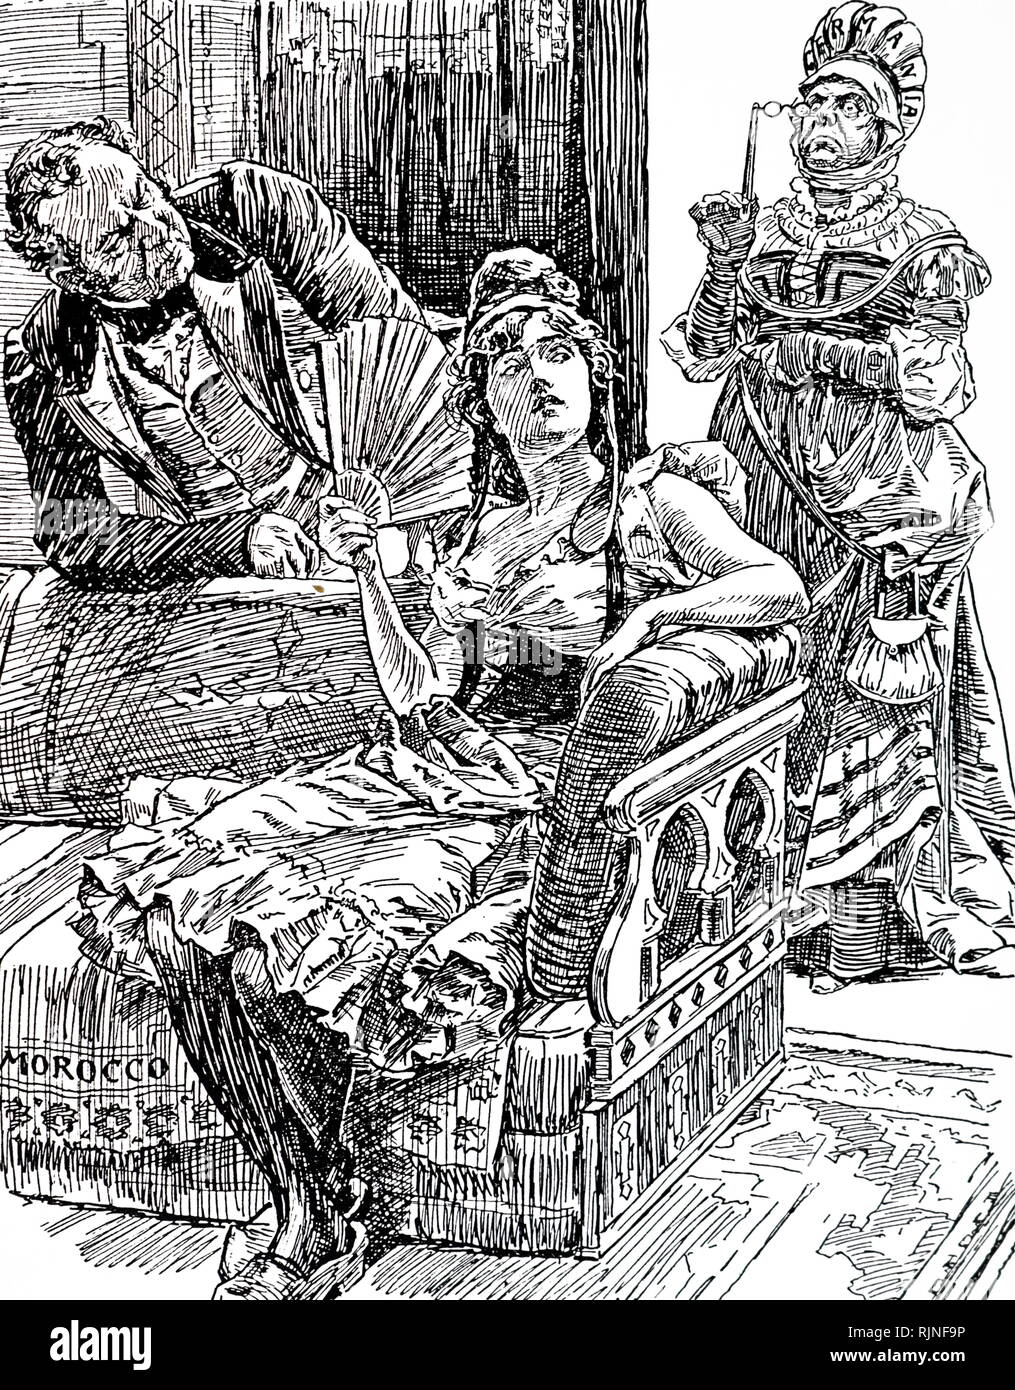 A cartoon commenting on the First Moroccan Crisis or the Tangier incident. Germany looks in disapproval as France and Britain approach an engagement. Illustrated by Bernard Partridge. - Stock Image